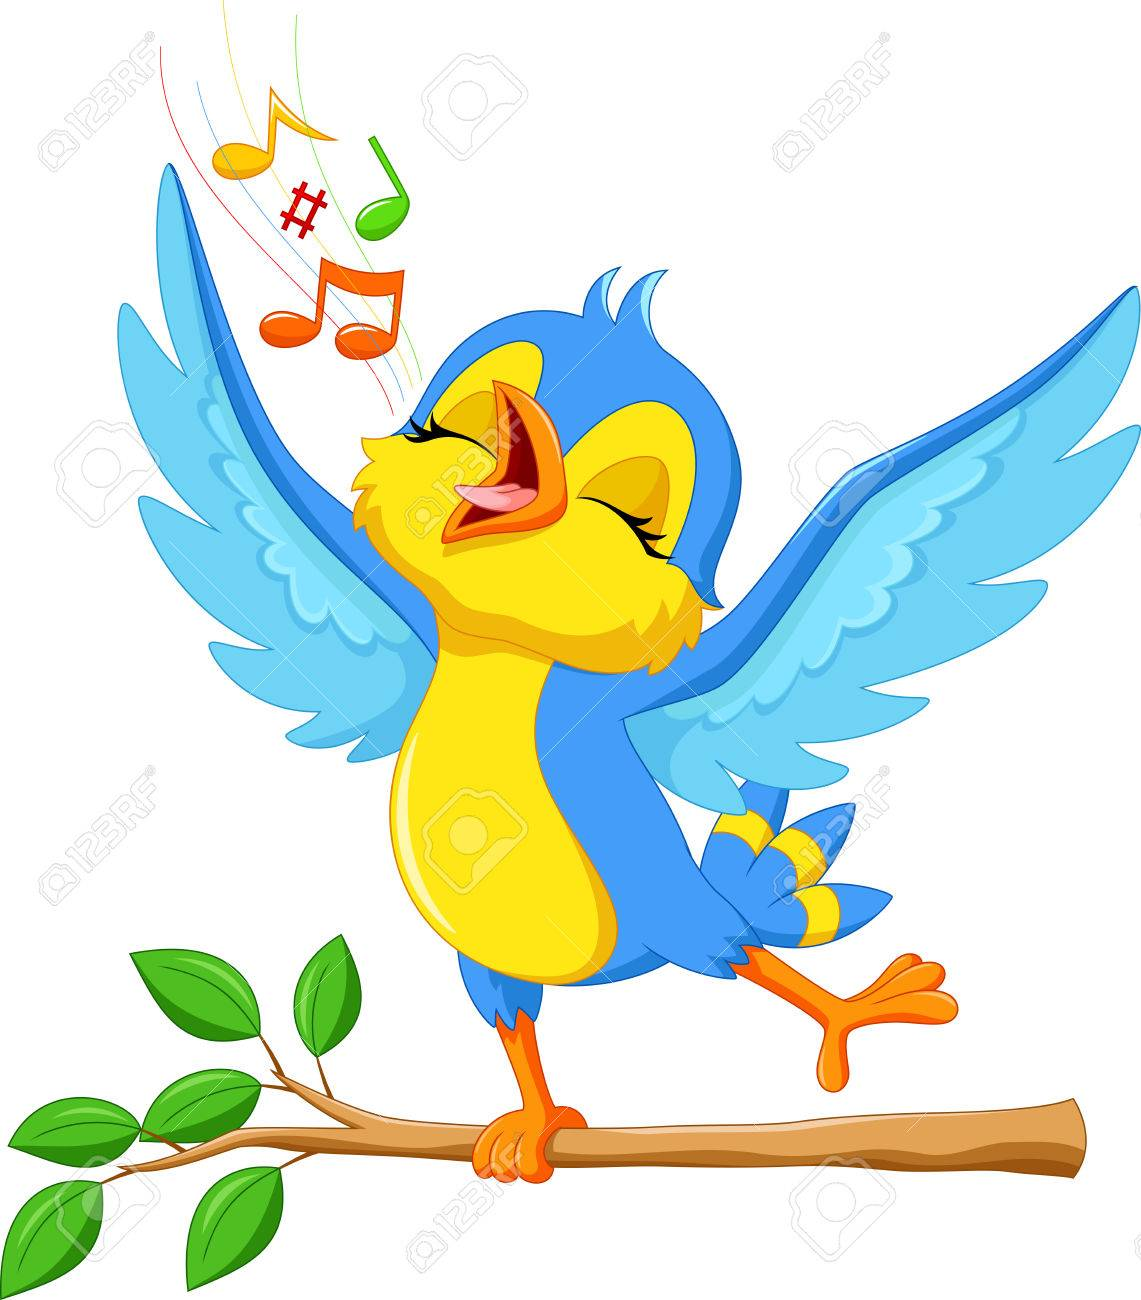 Song bird clipart picture download Bird clip art song bird - 187 transparent clip arts, images ... picture download